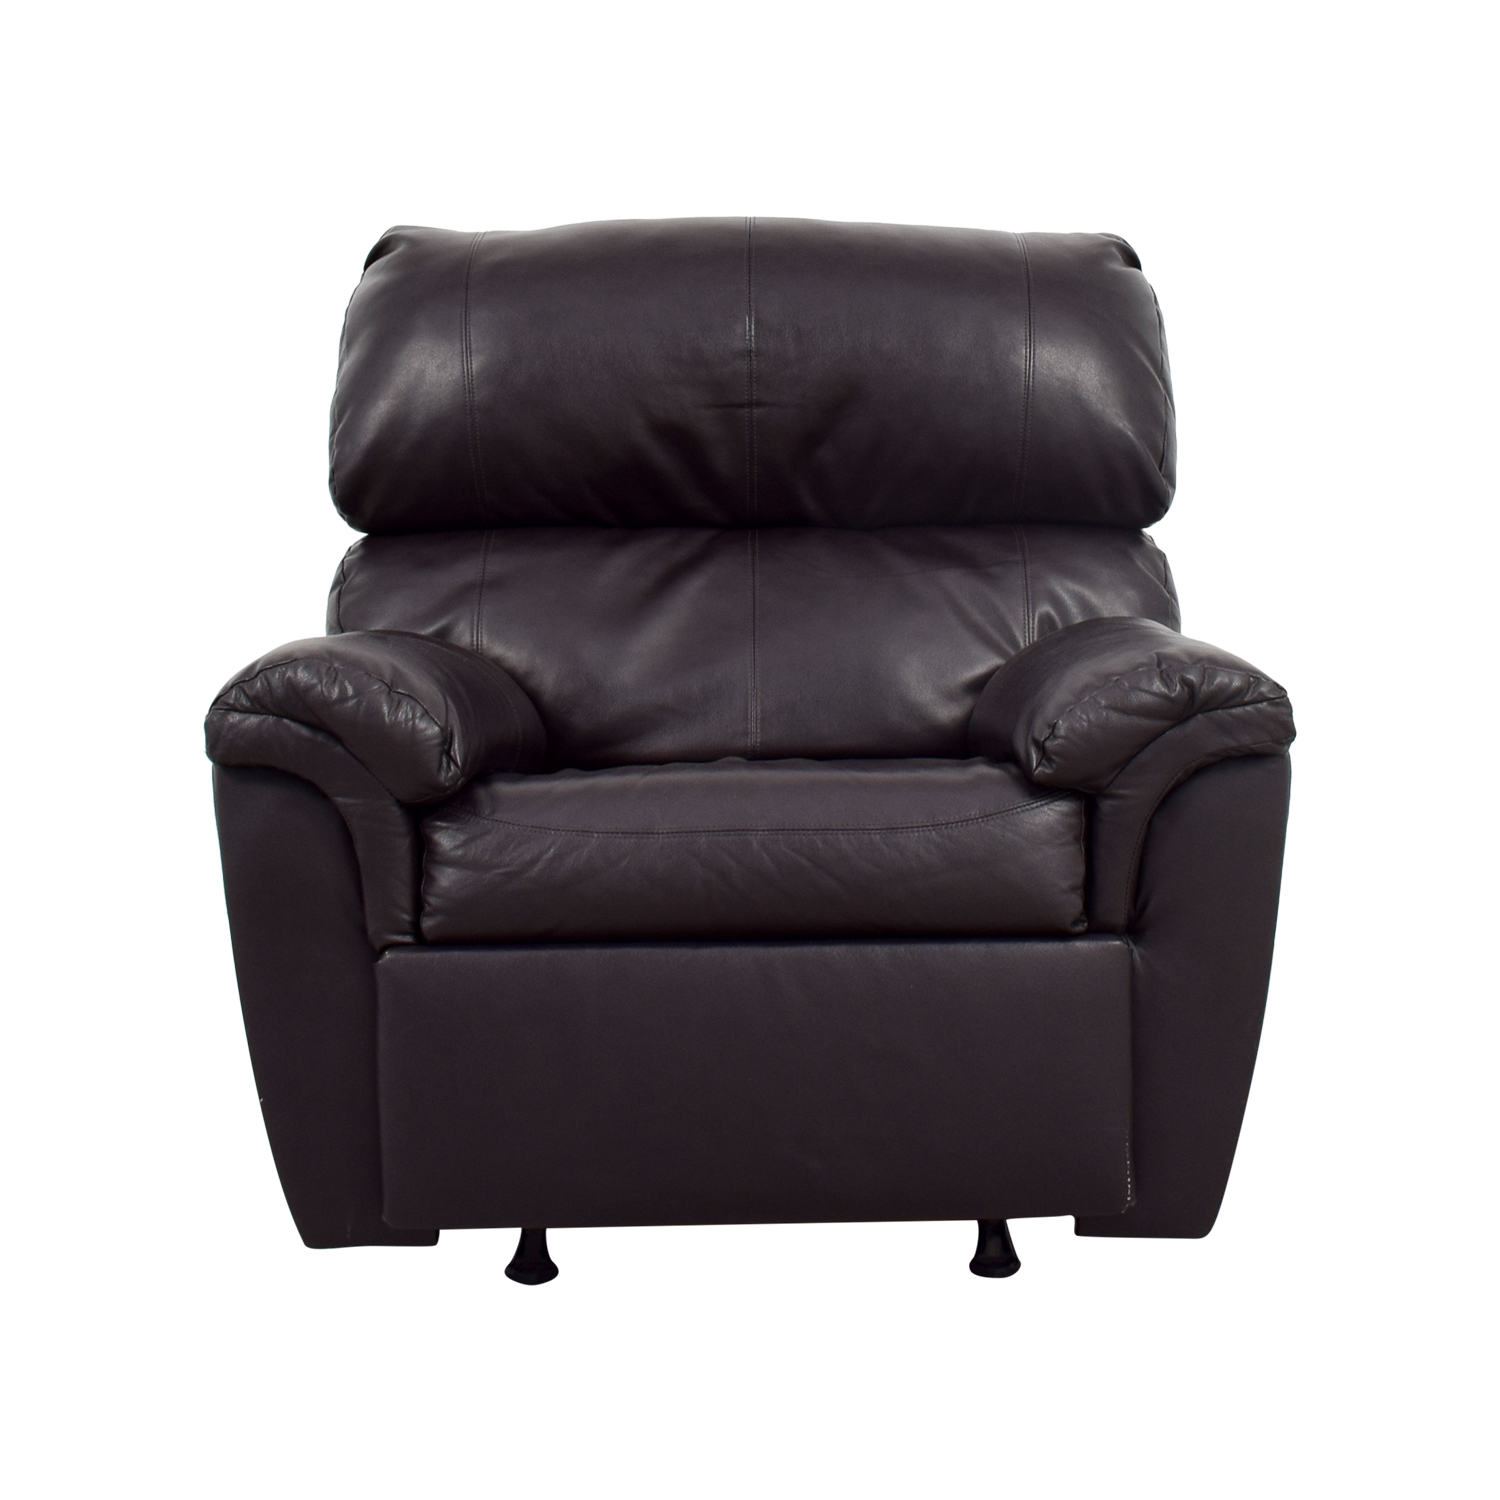 Bob s Discount Furniture Bob s Discount Furniture Leather Recliner. 75  OFF   Bob s Discount Furniture Bob s Discount Furniture